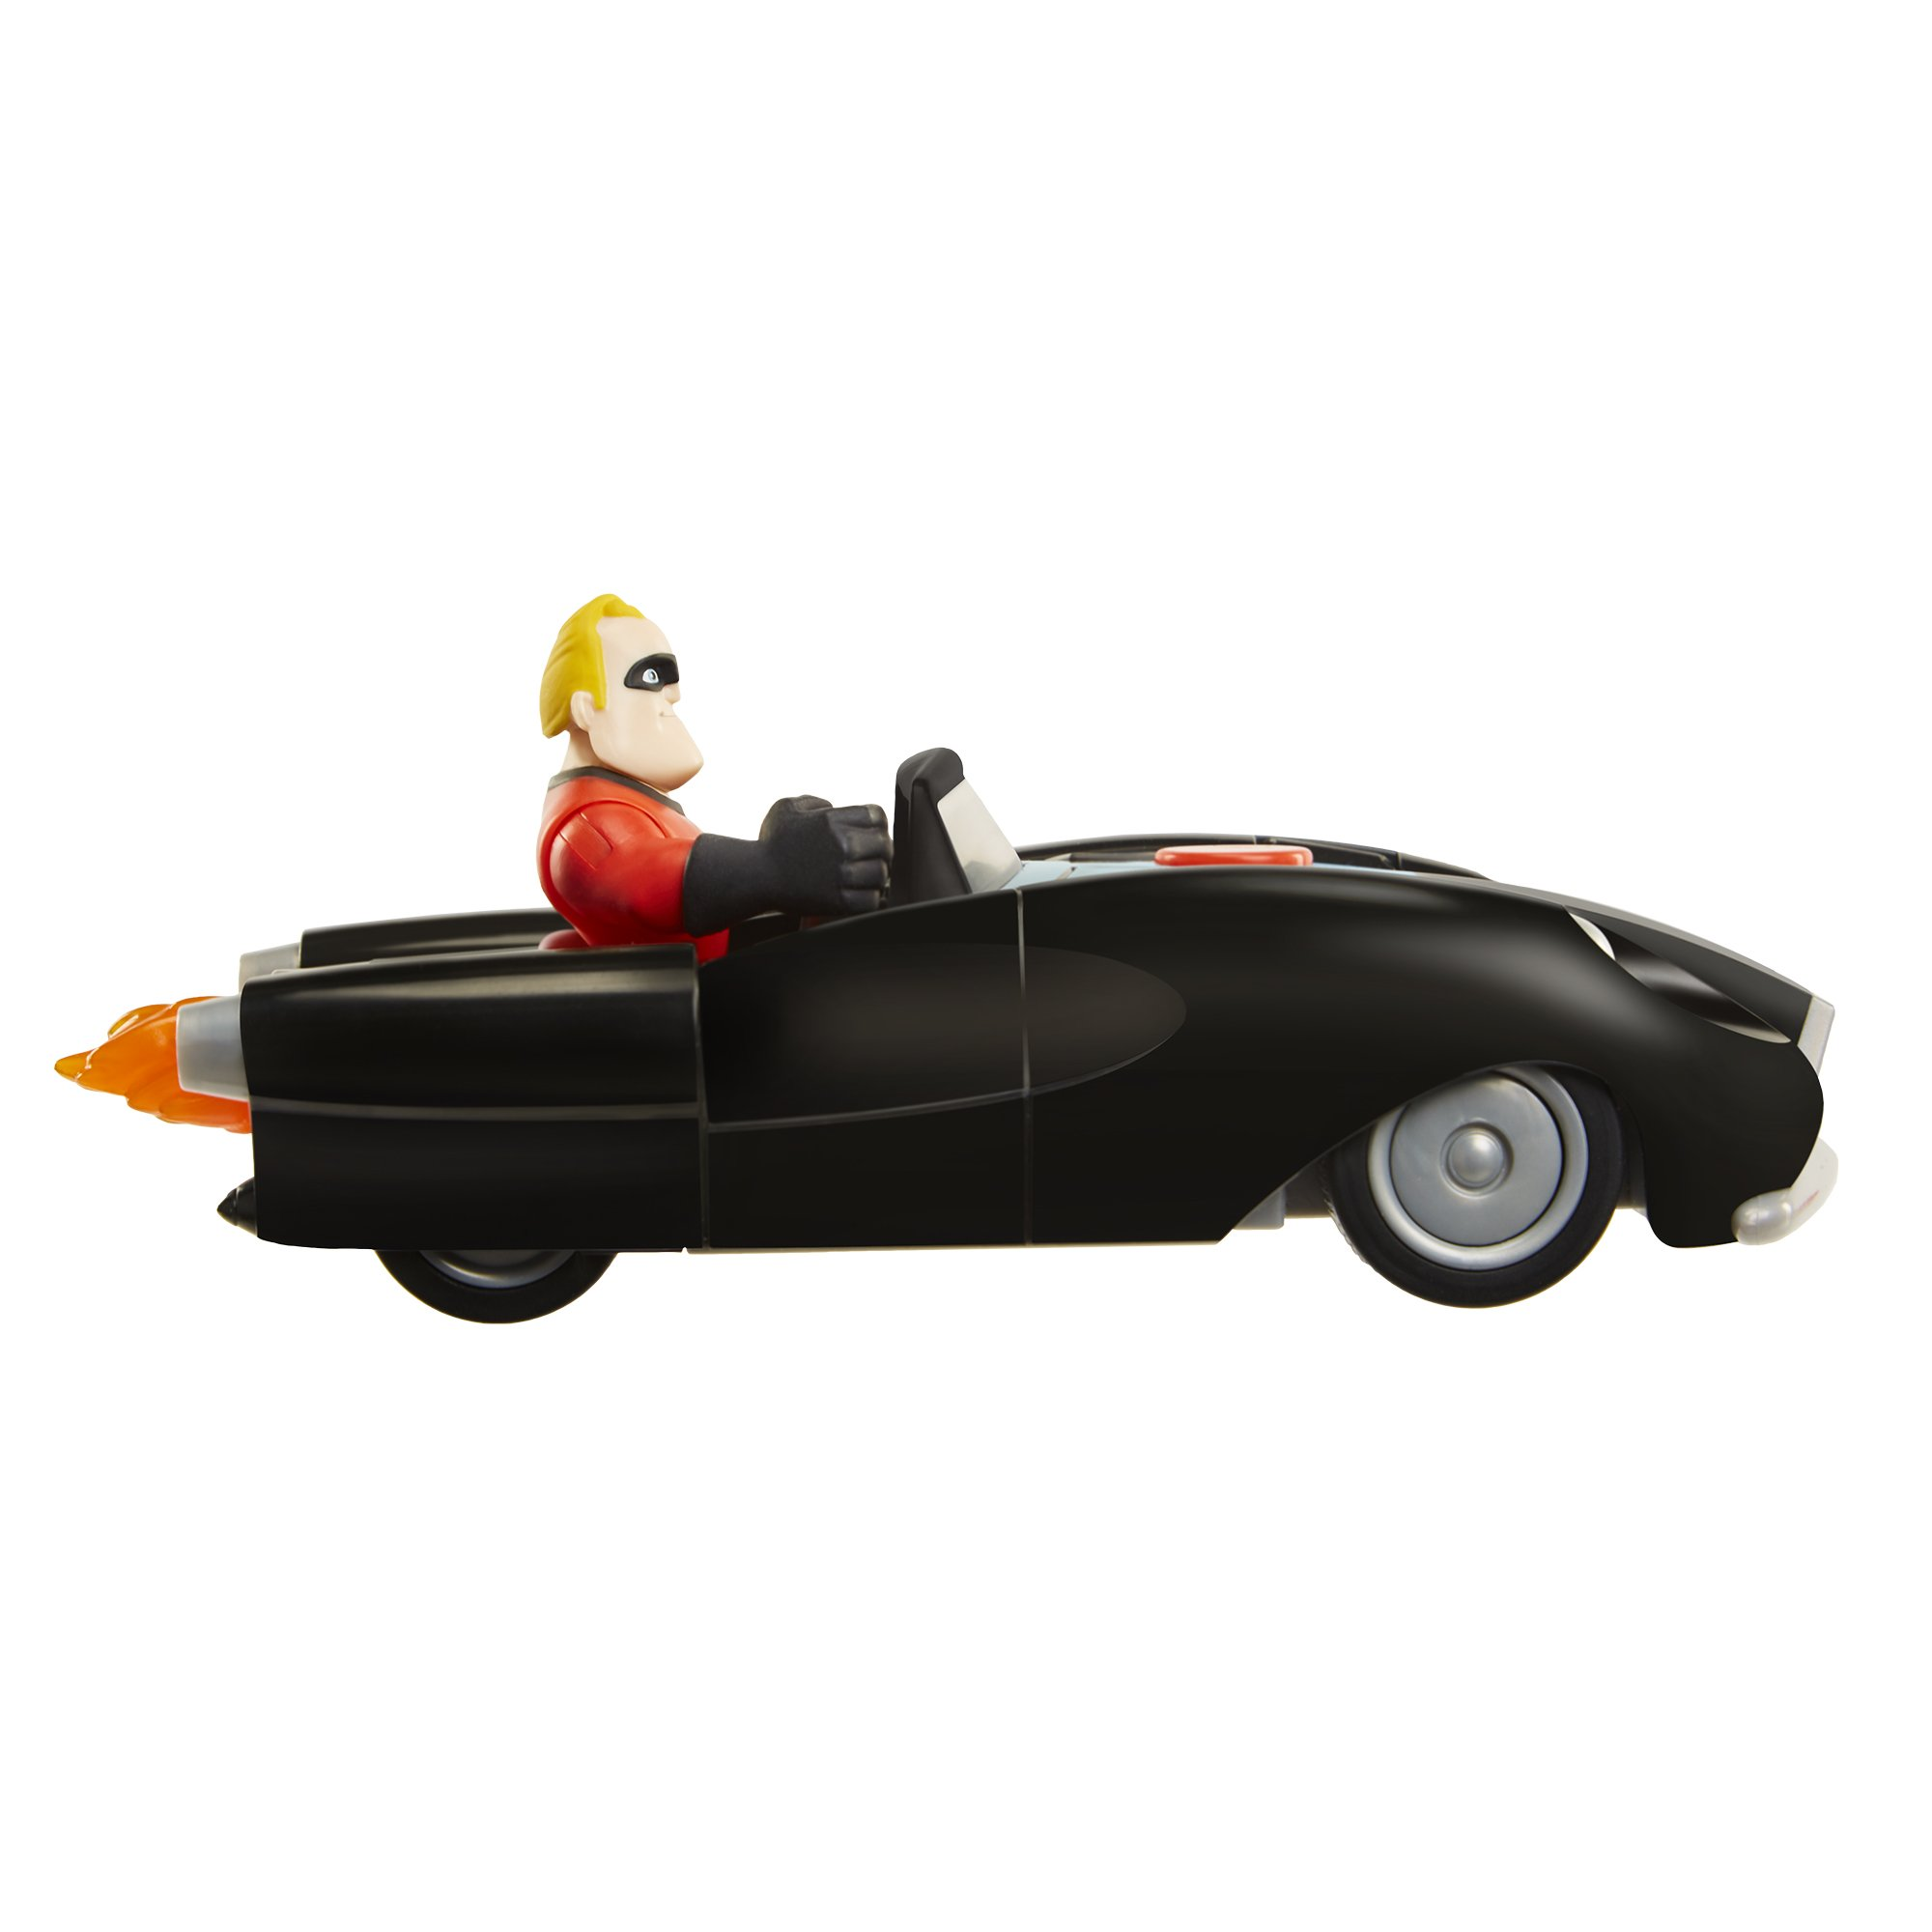 The Incredibles 2 Incredibile Car & Mr. Incredible Action Figure 2-Piece Set, Black Car and Red Mr. Incredible Figure, Medium by The Incredibles 2 (Image #11)